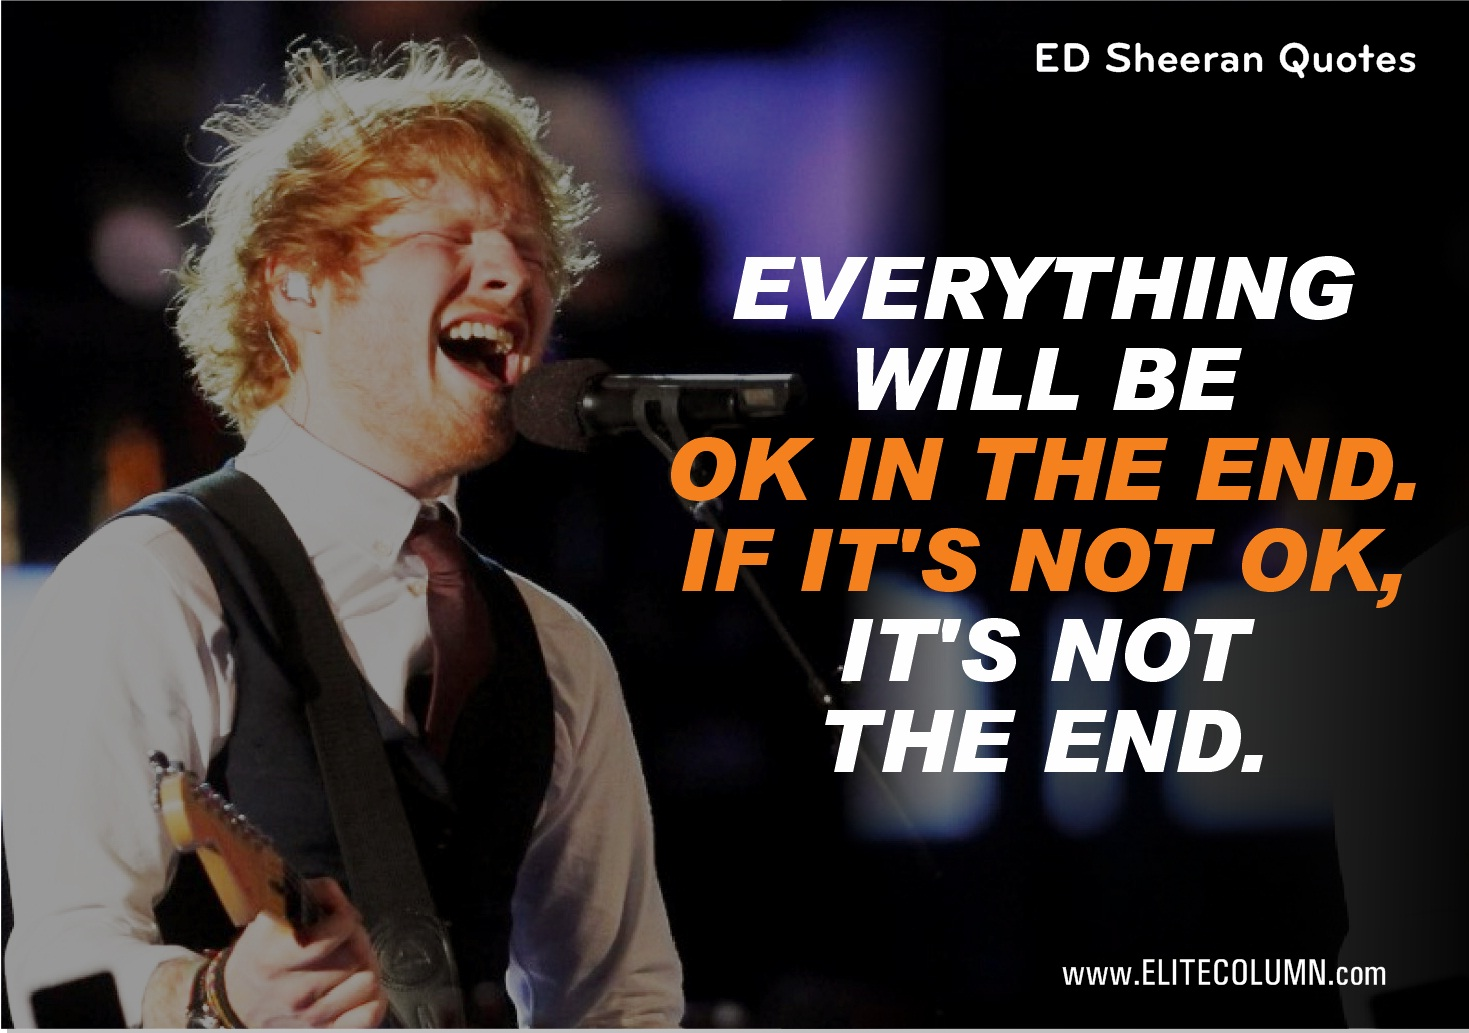 Ed Sheeran Quotes (2)